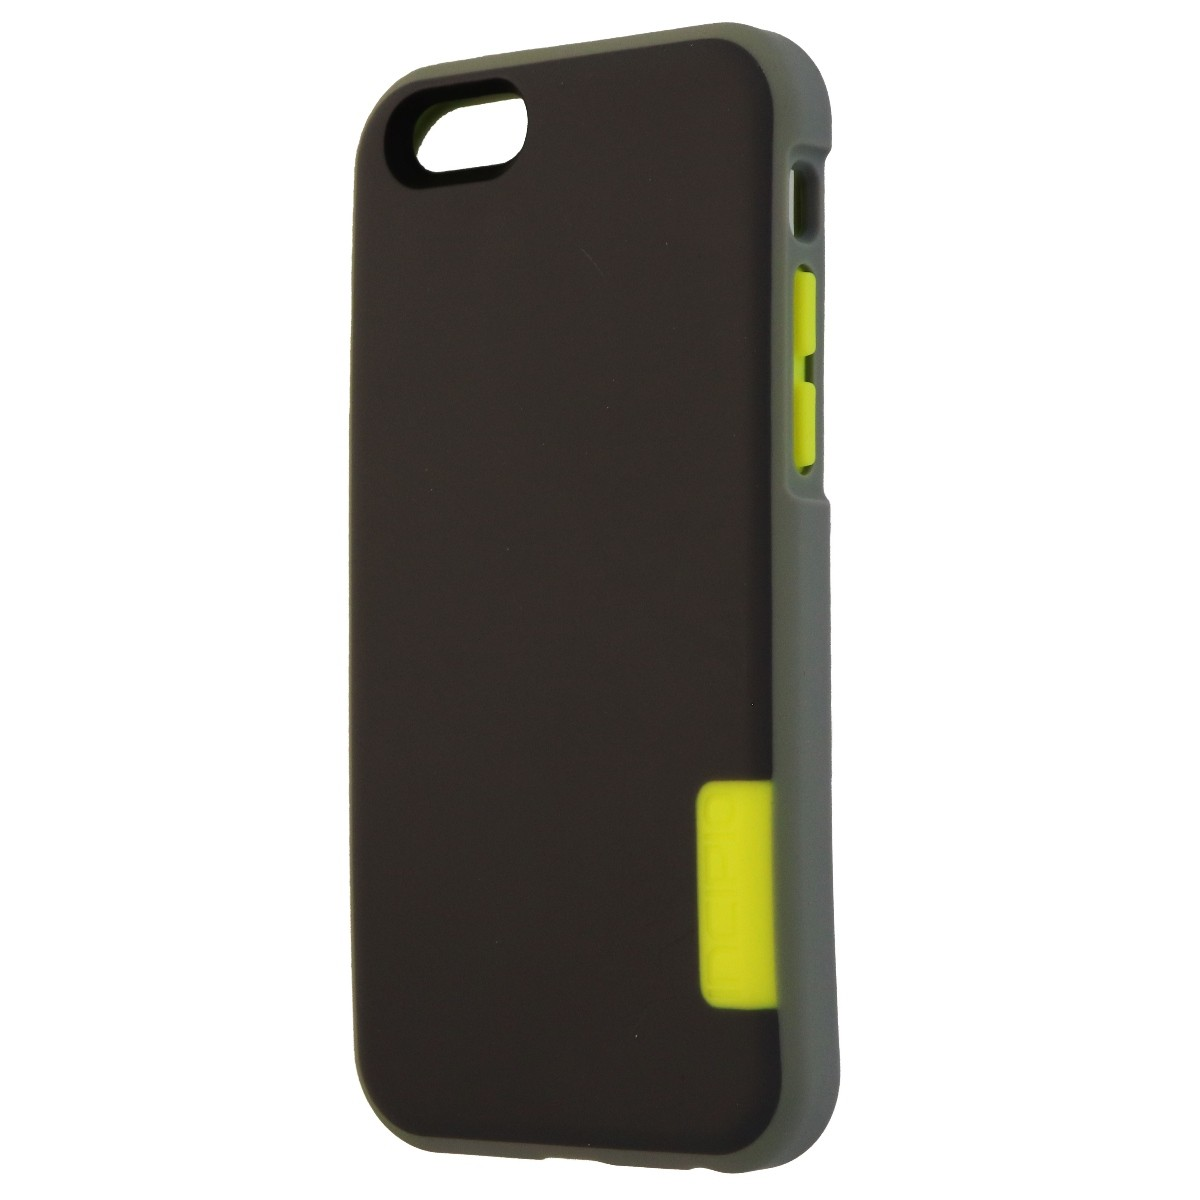 Incipio Phenom Series Protective Case Cover for iPhone 6s 6 - Gray/Electric Lime